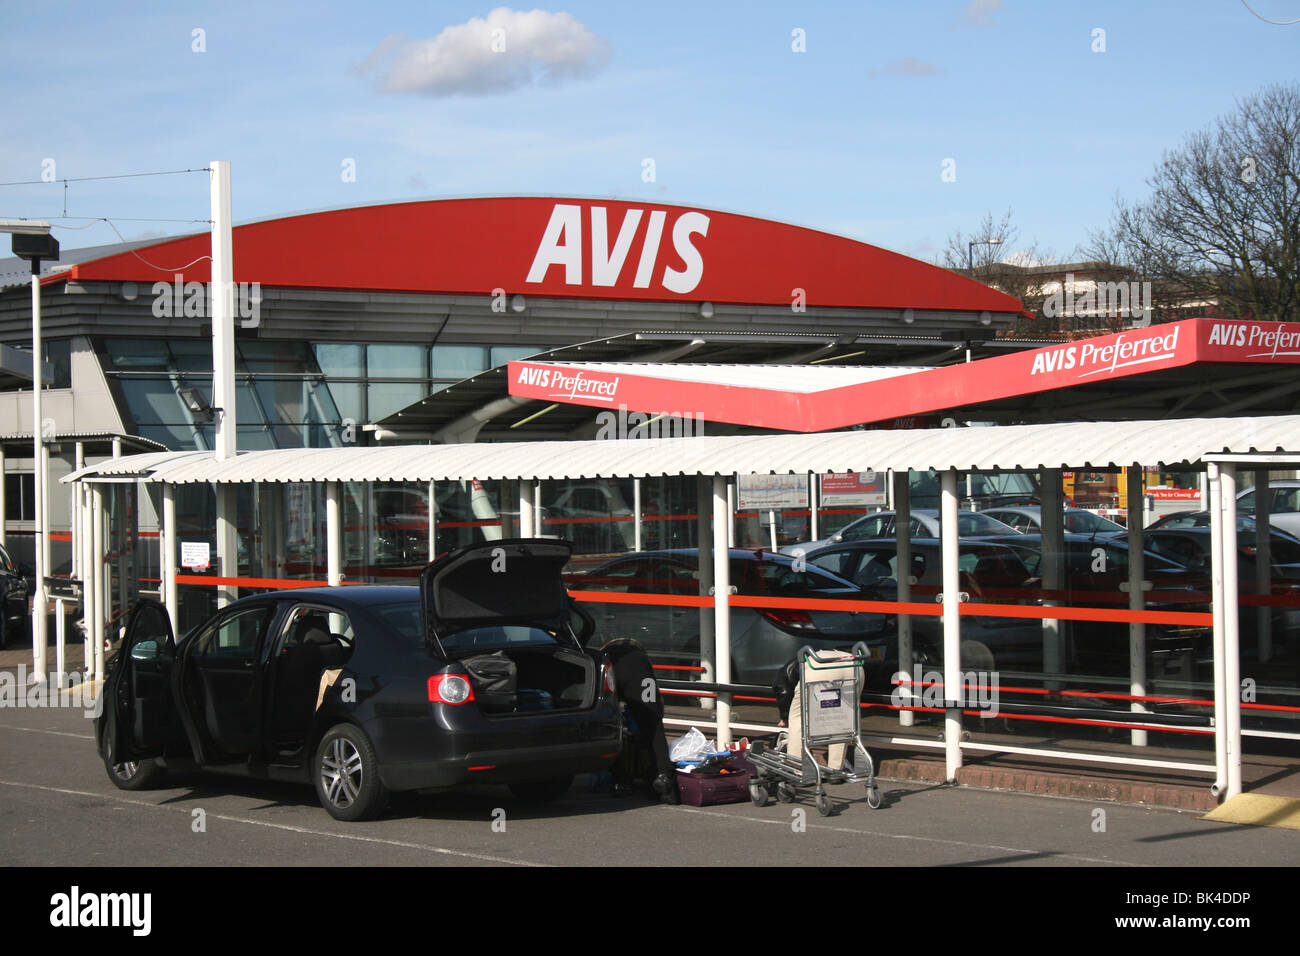 Avis Malaga Avis Hire Car Stock Photos Avis Hire Car Stock Images Alamy